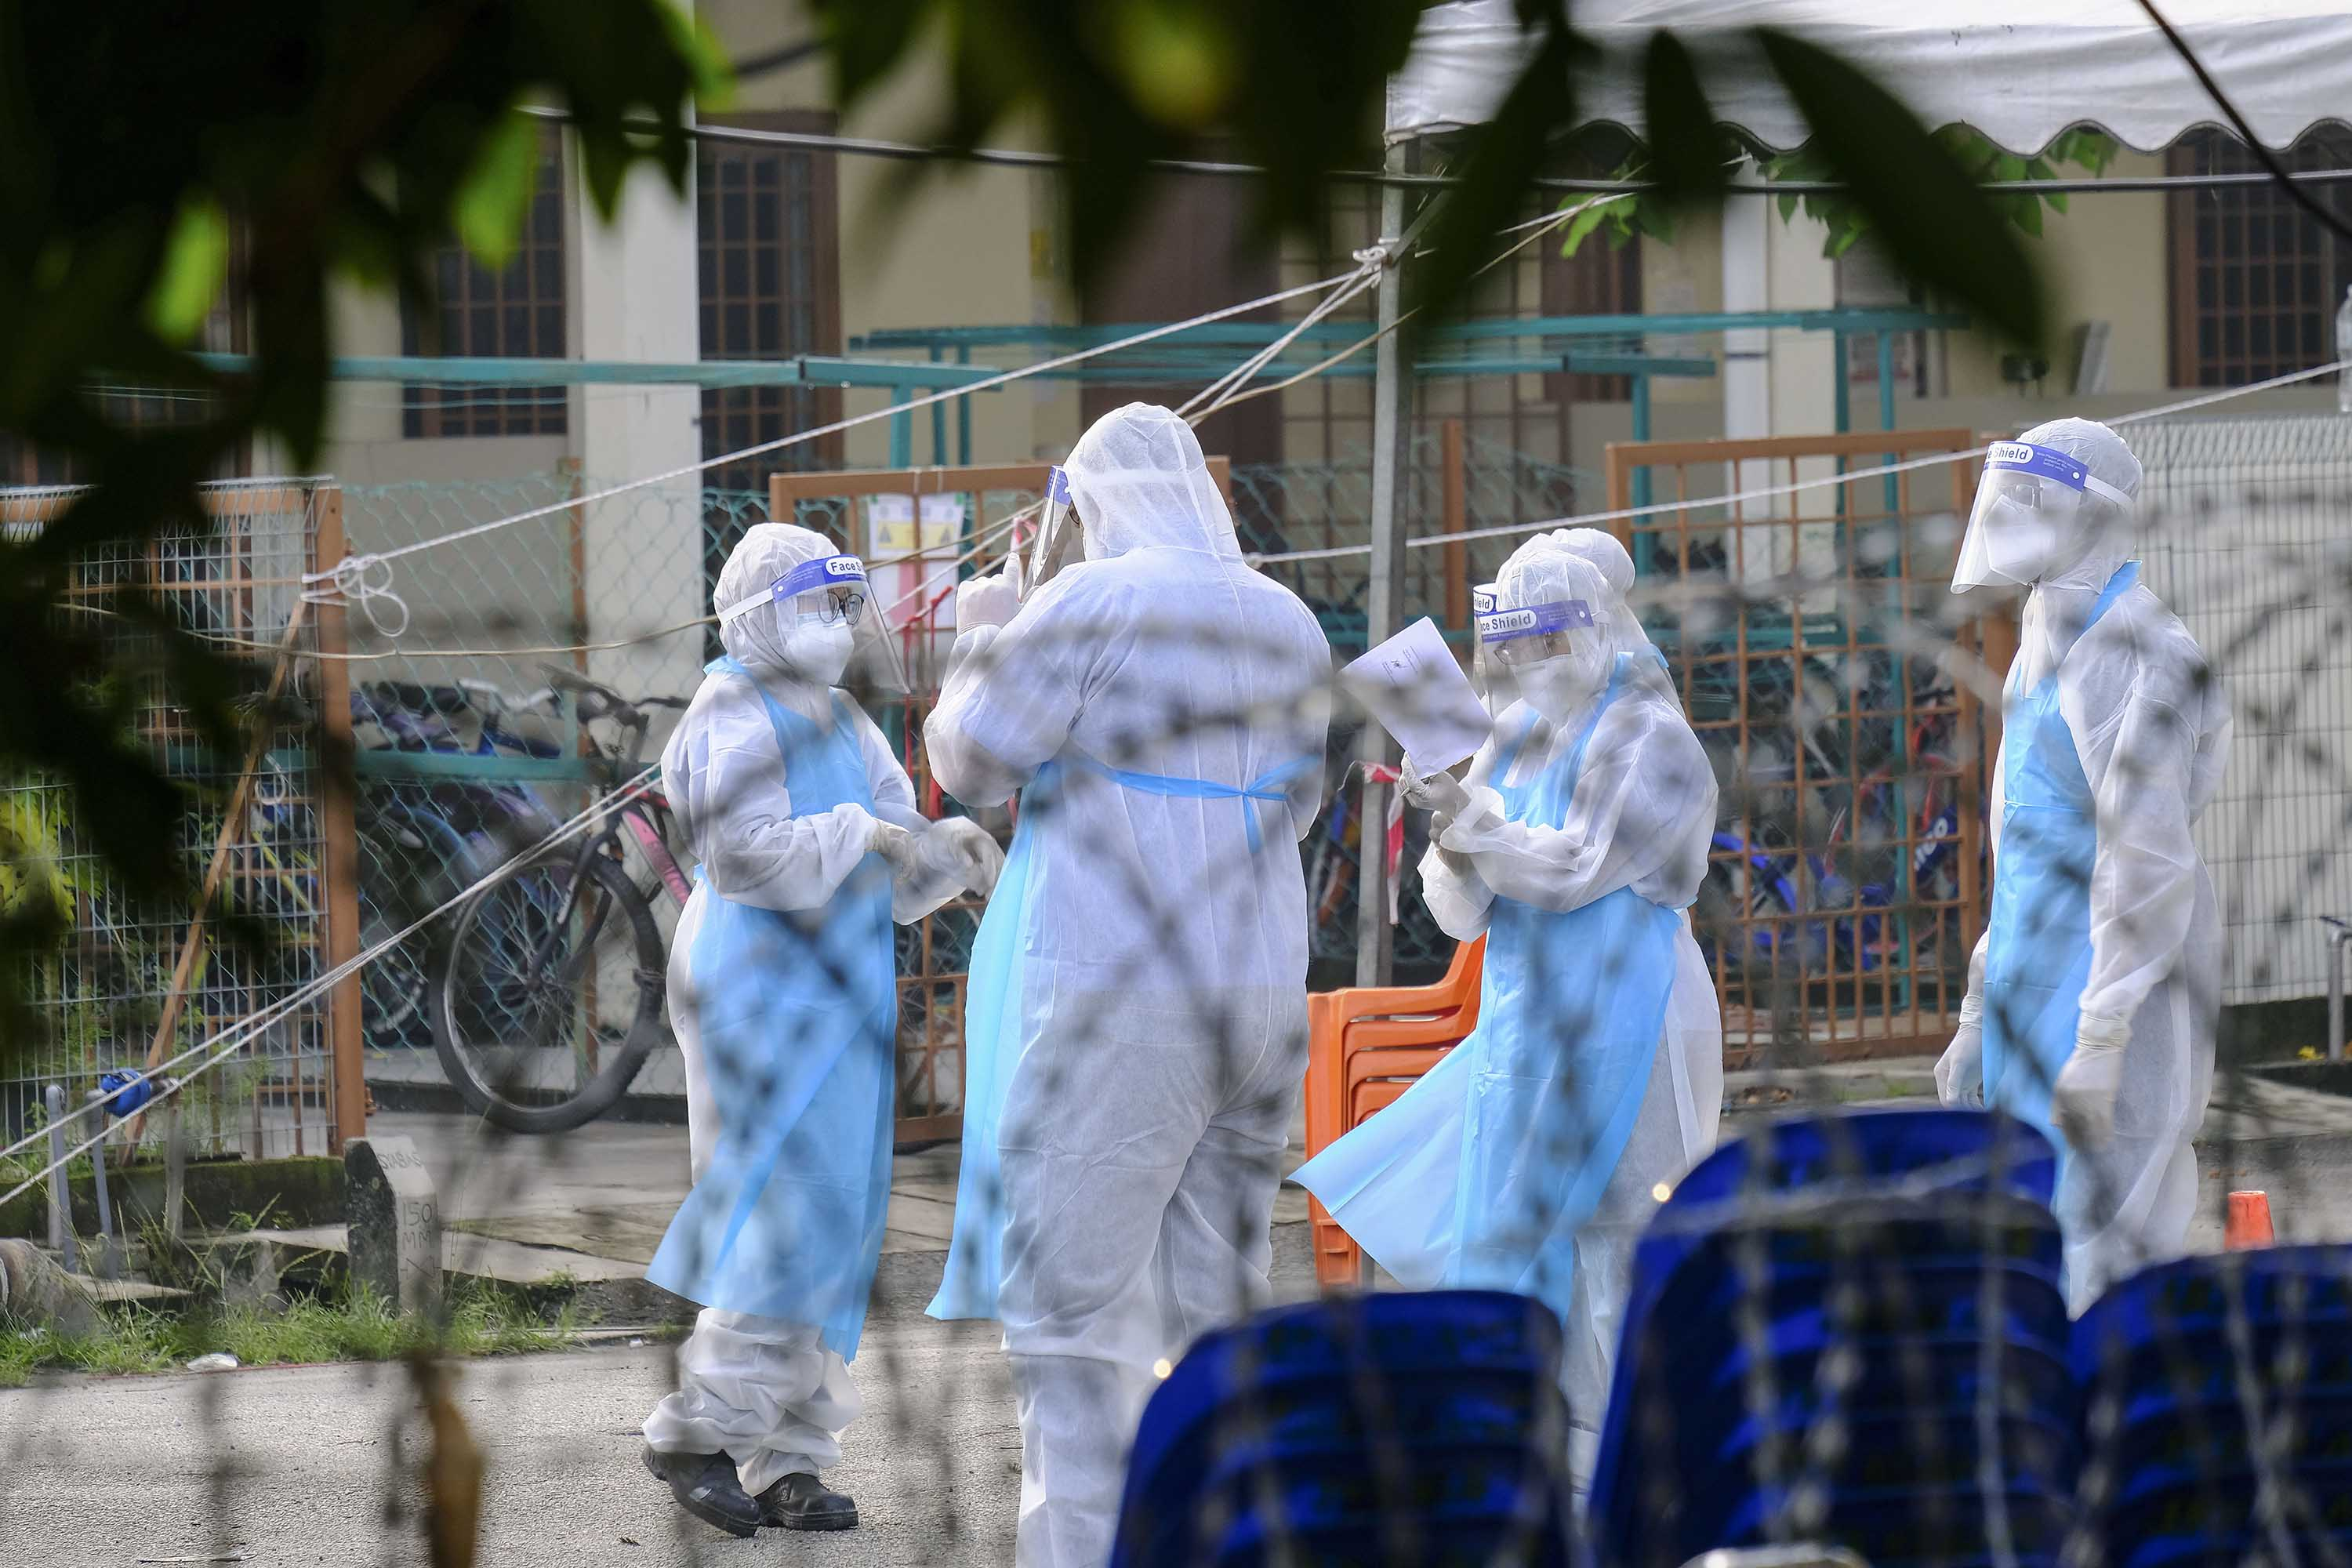 People wearing protective suits are seen behind barbed wire at the Top Glove hostel compound in Klang, Malaysia, on November 23.